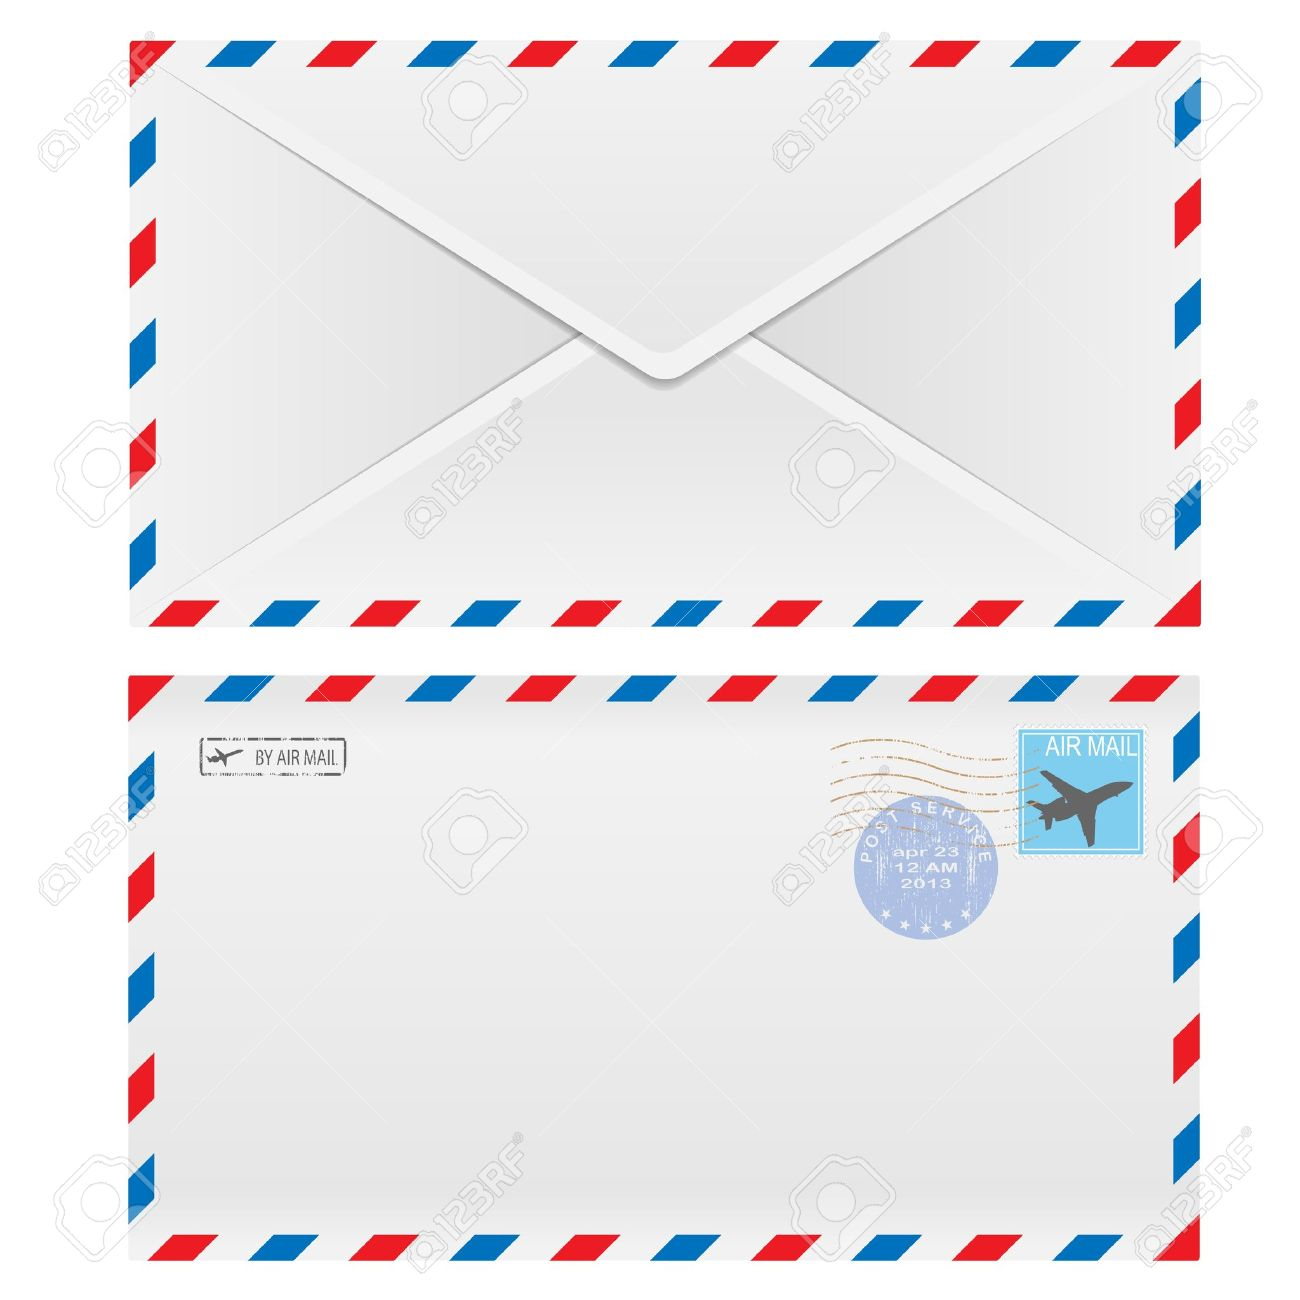 Air mail envelope with postal stamp isolated on white background. Standard-Bild - 19656814